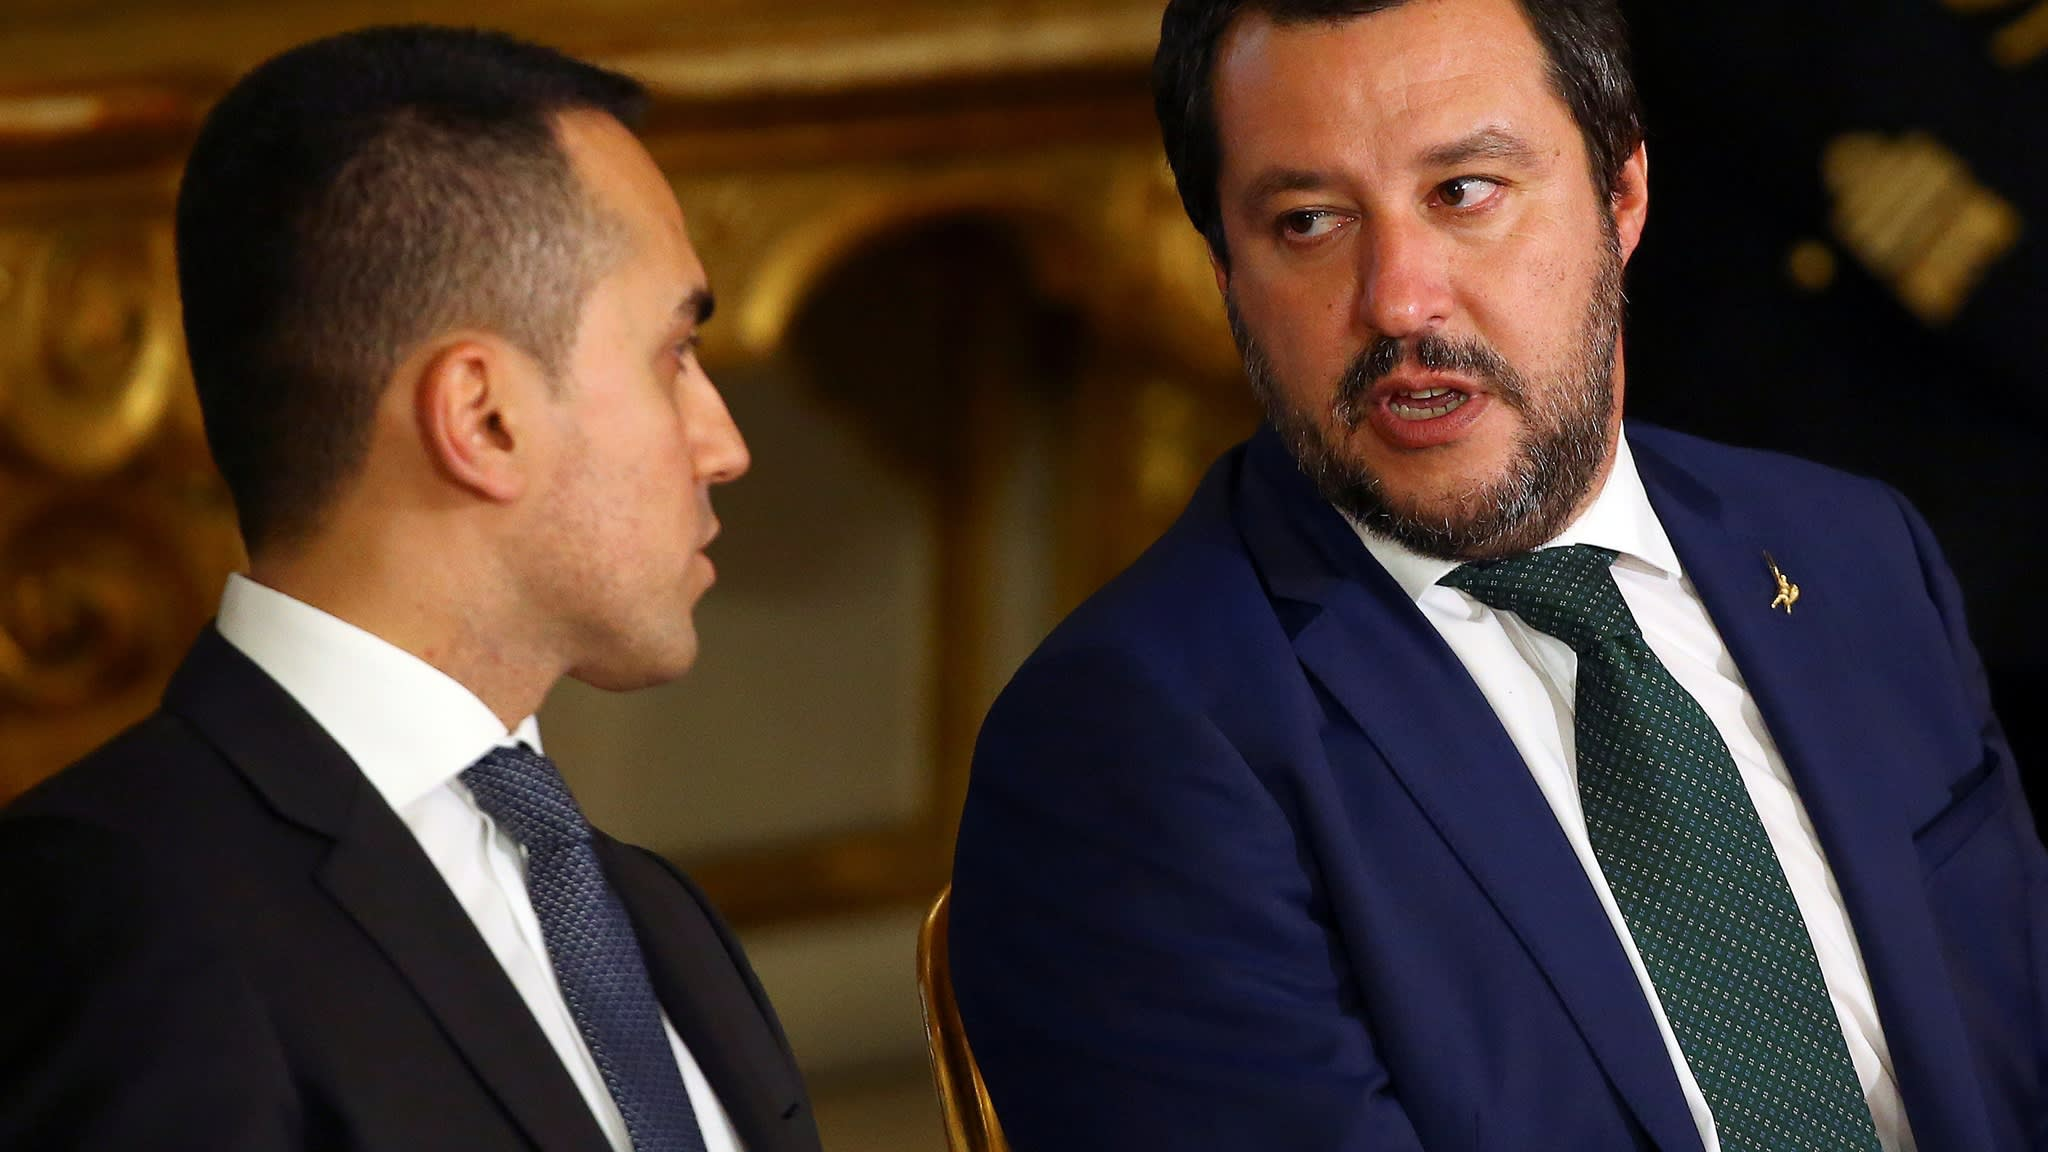 Italy promises budget cuts to avoid EU sanctions